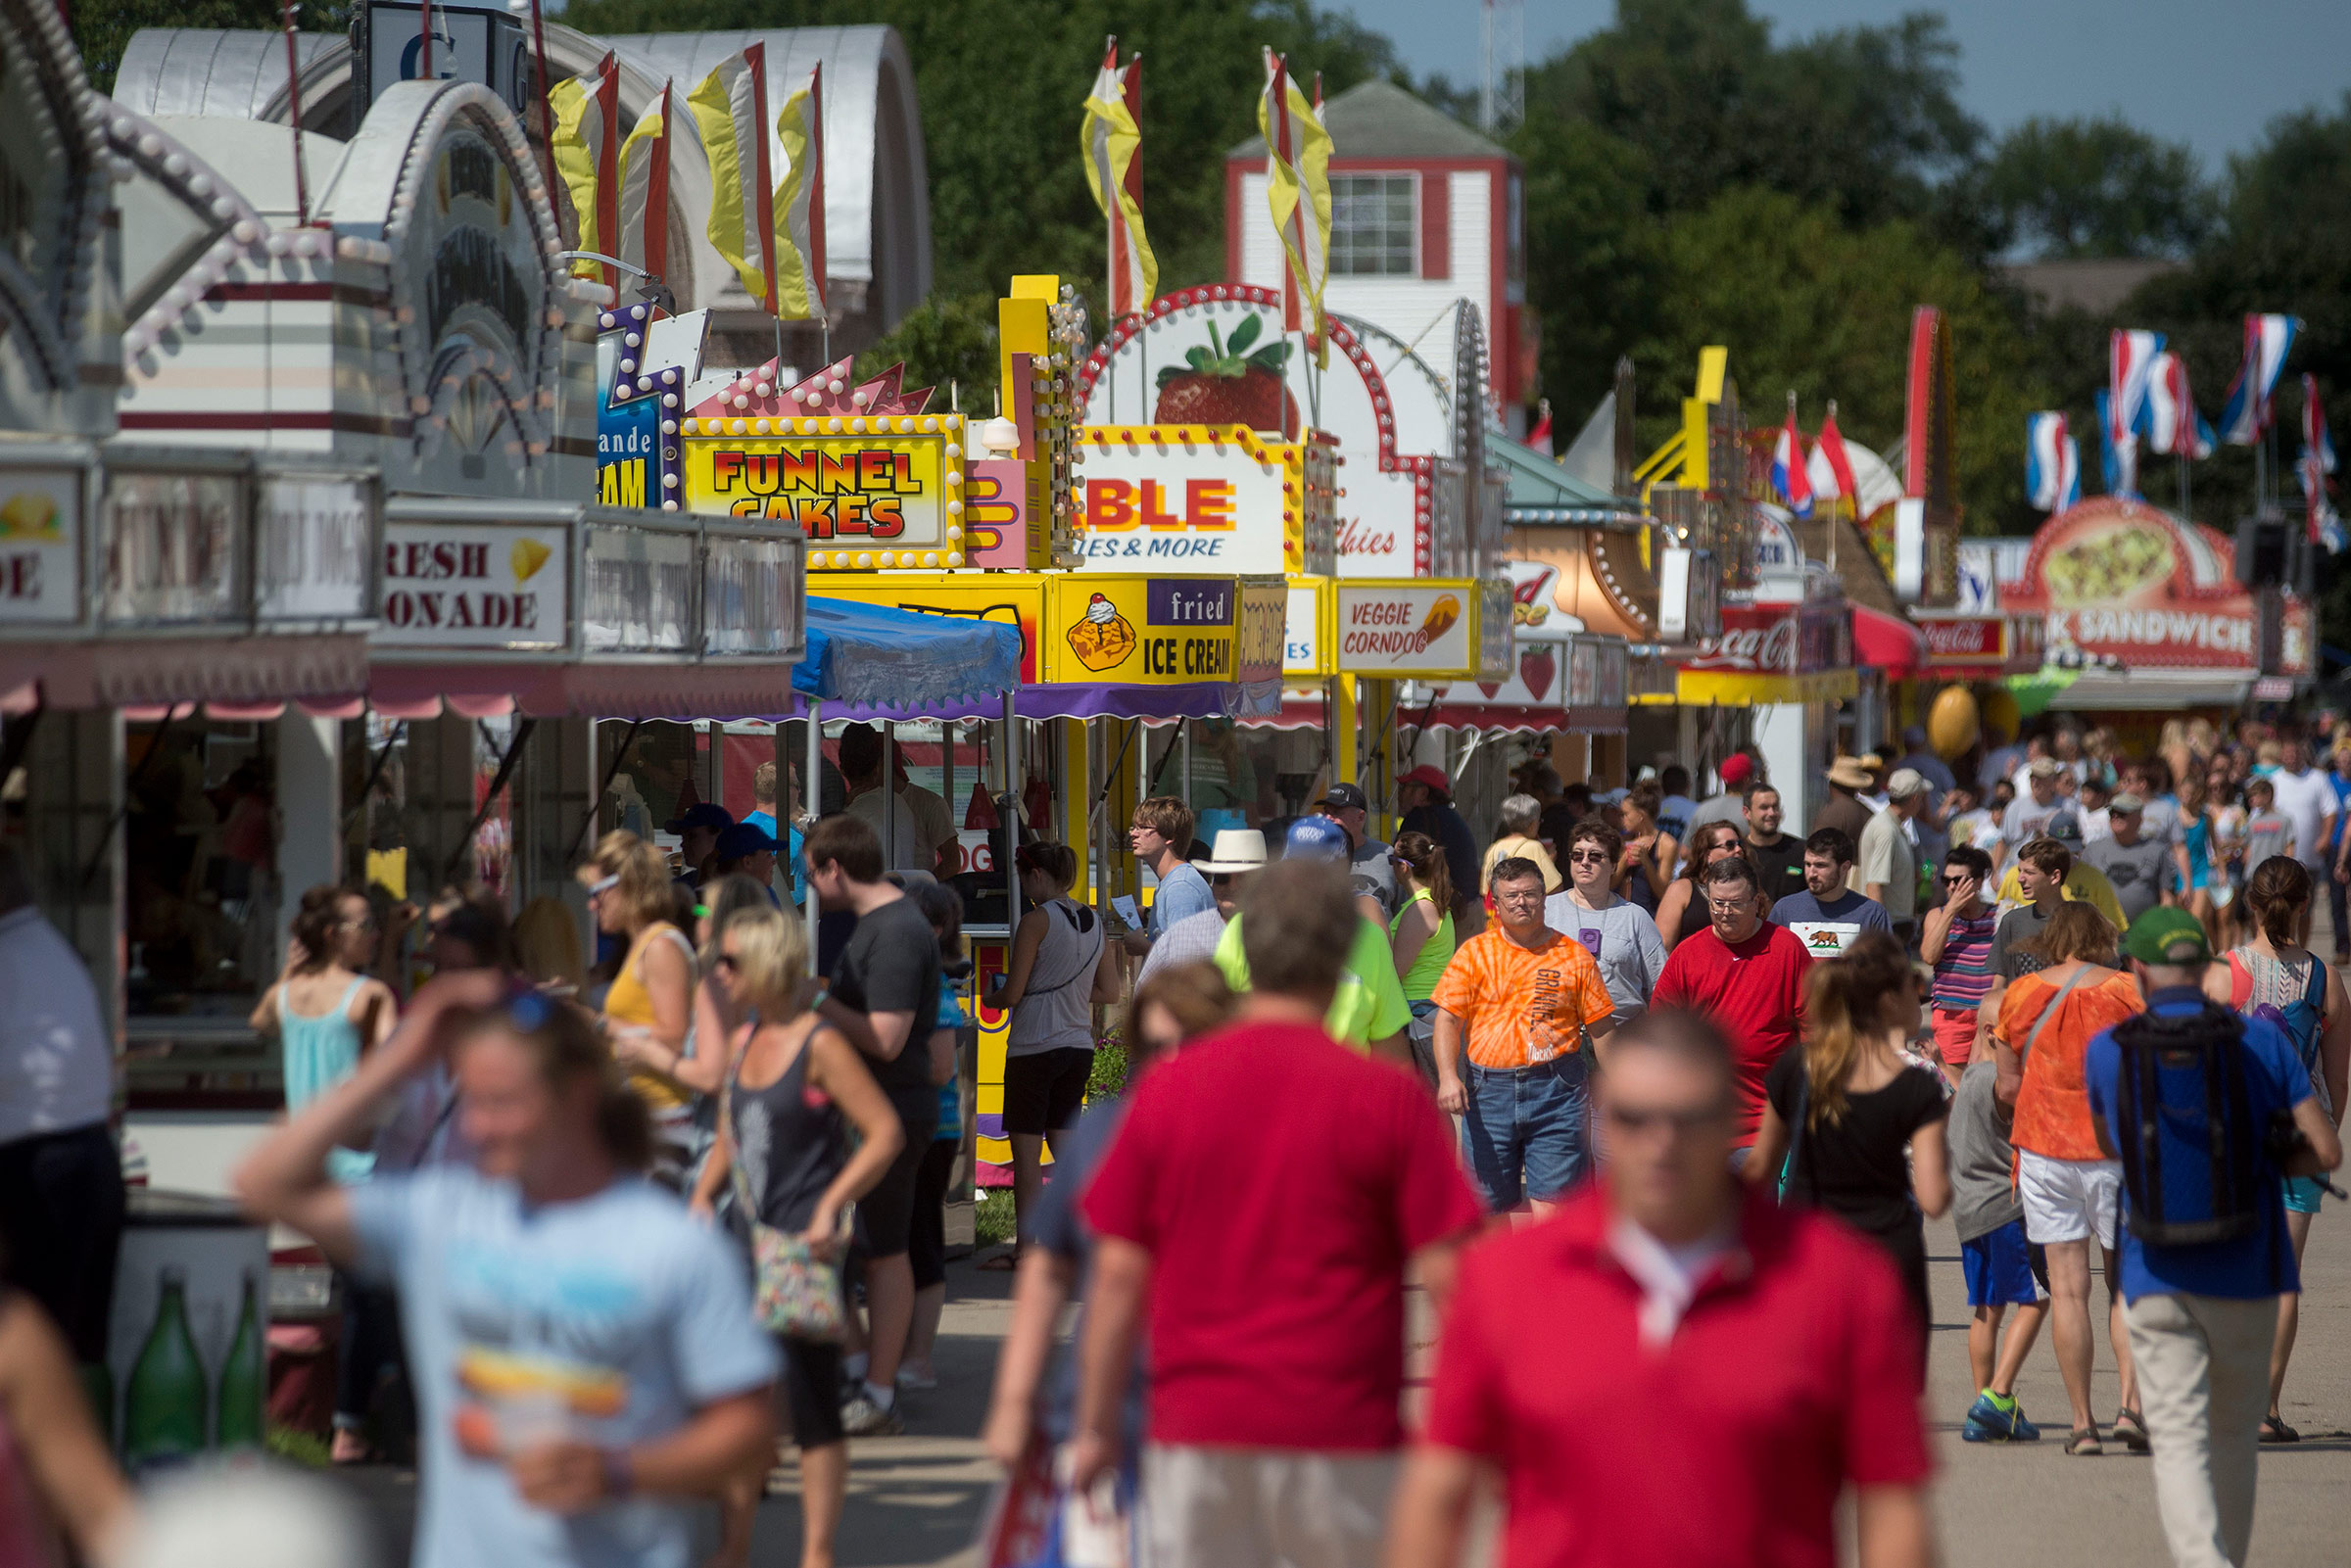 Attendees walk past food stands at the Iowa State Fair in Des Moines, Iowa, U.S. in August 2015.